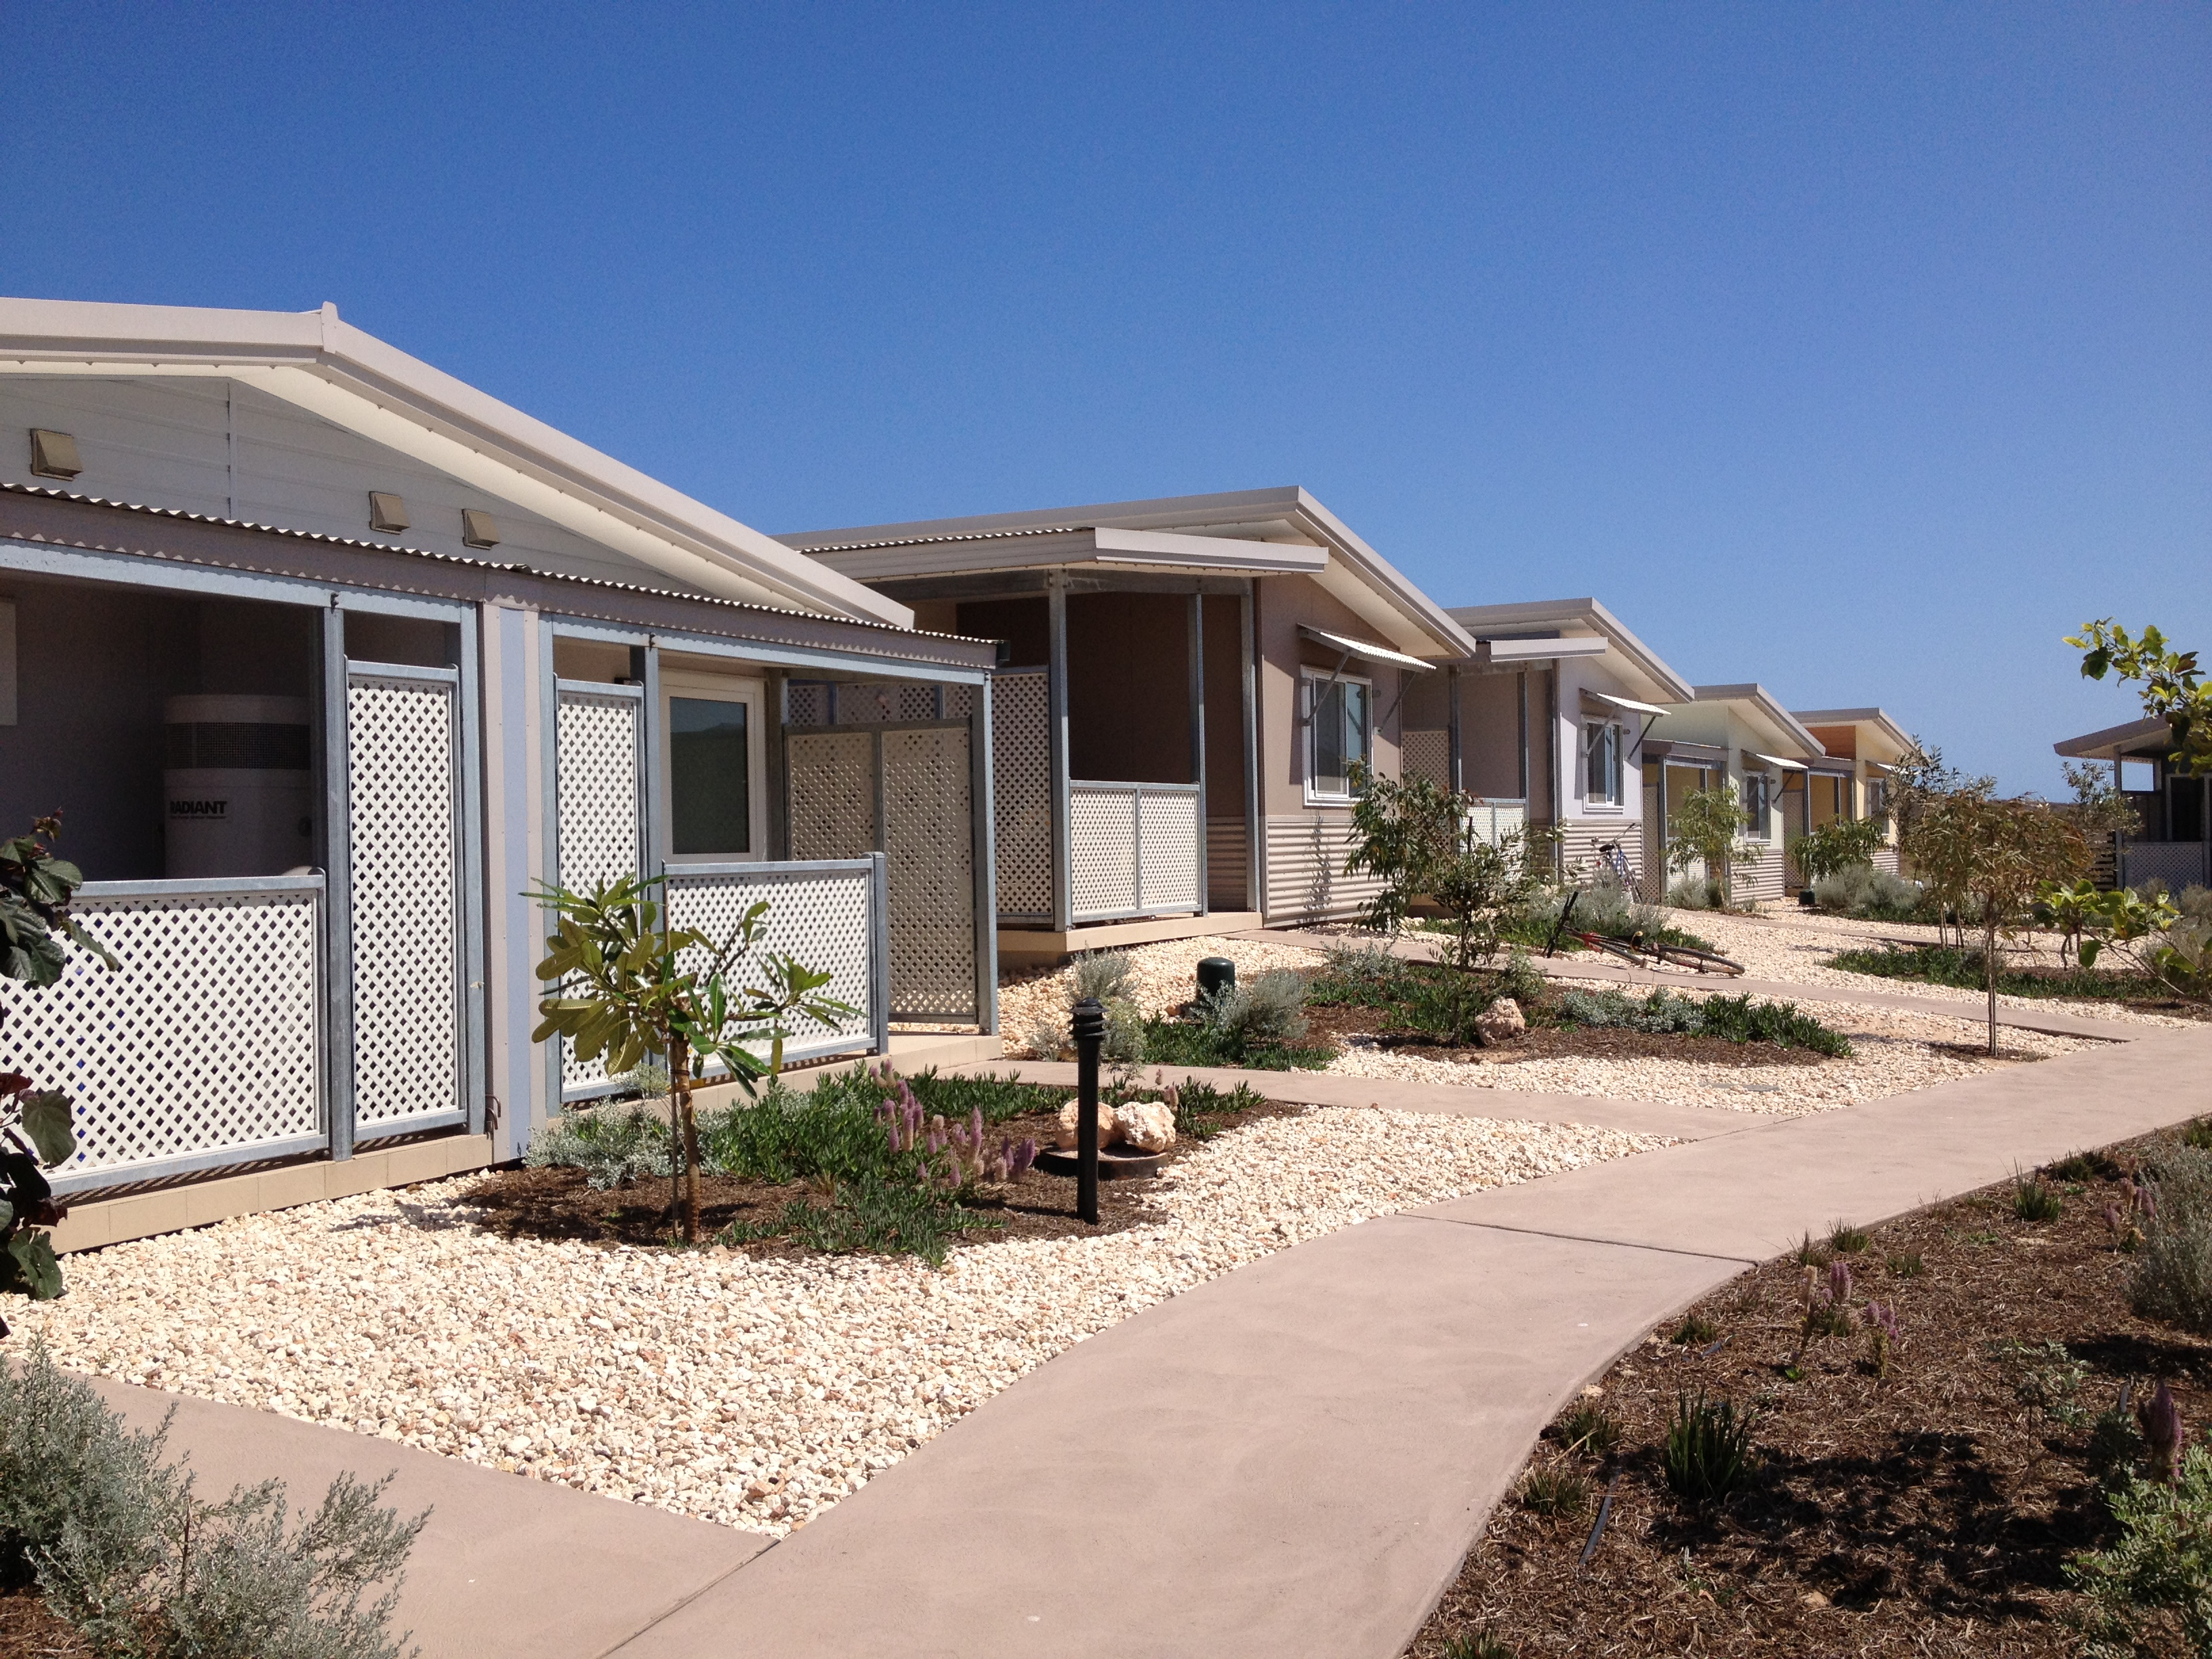 Coral bay seasonal workers accommodation 1